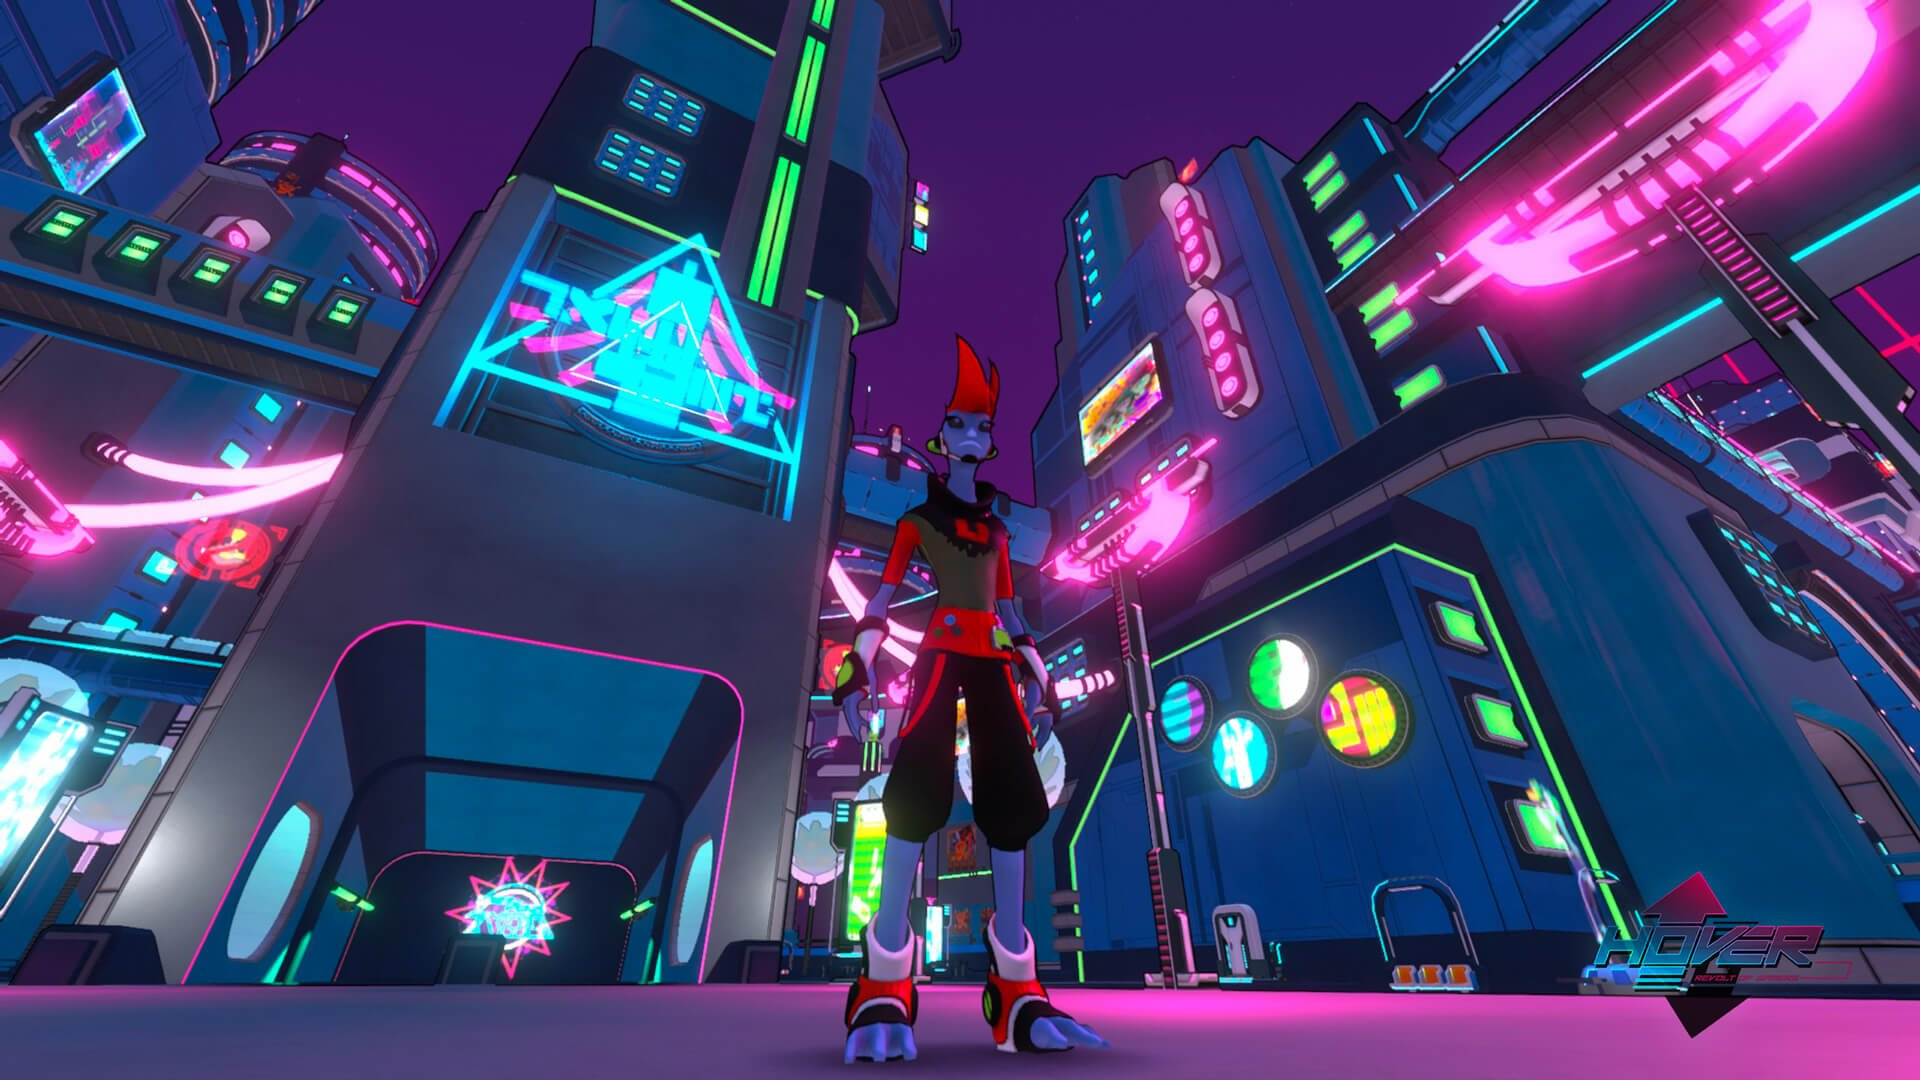 Screenshots for Hover, released on May 6th 2017